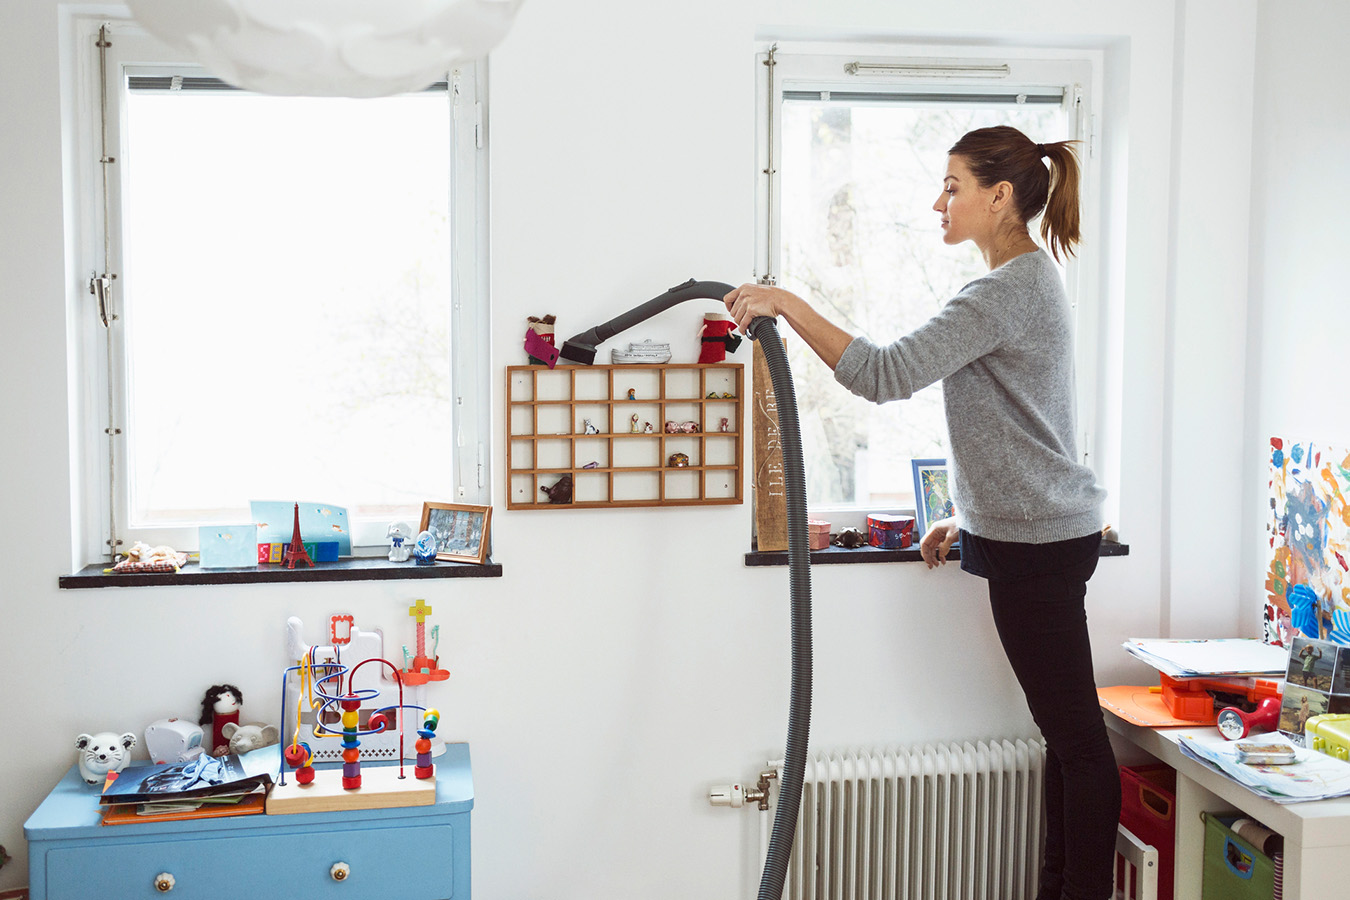 Woman dusting a shelf in a child's room.